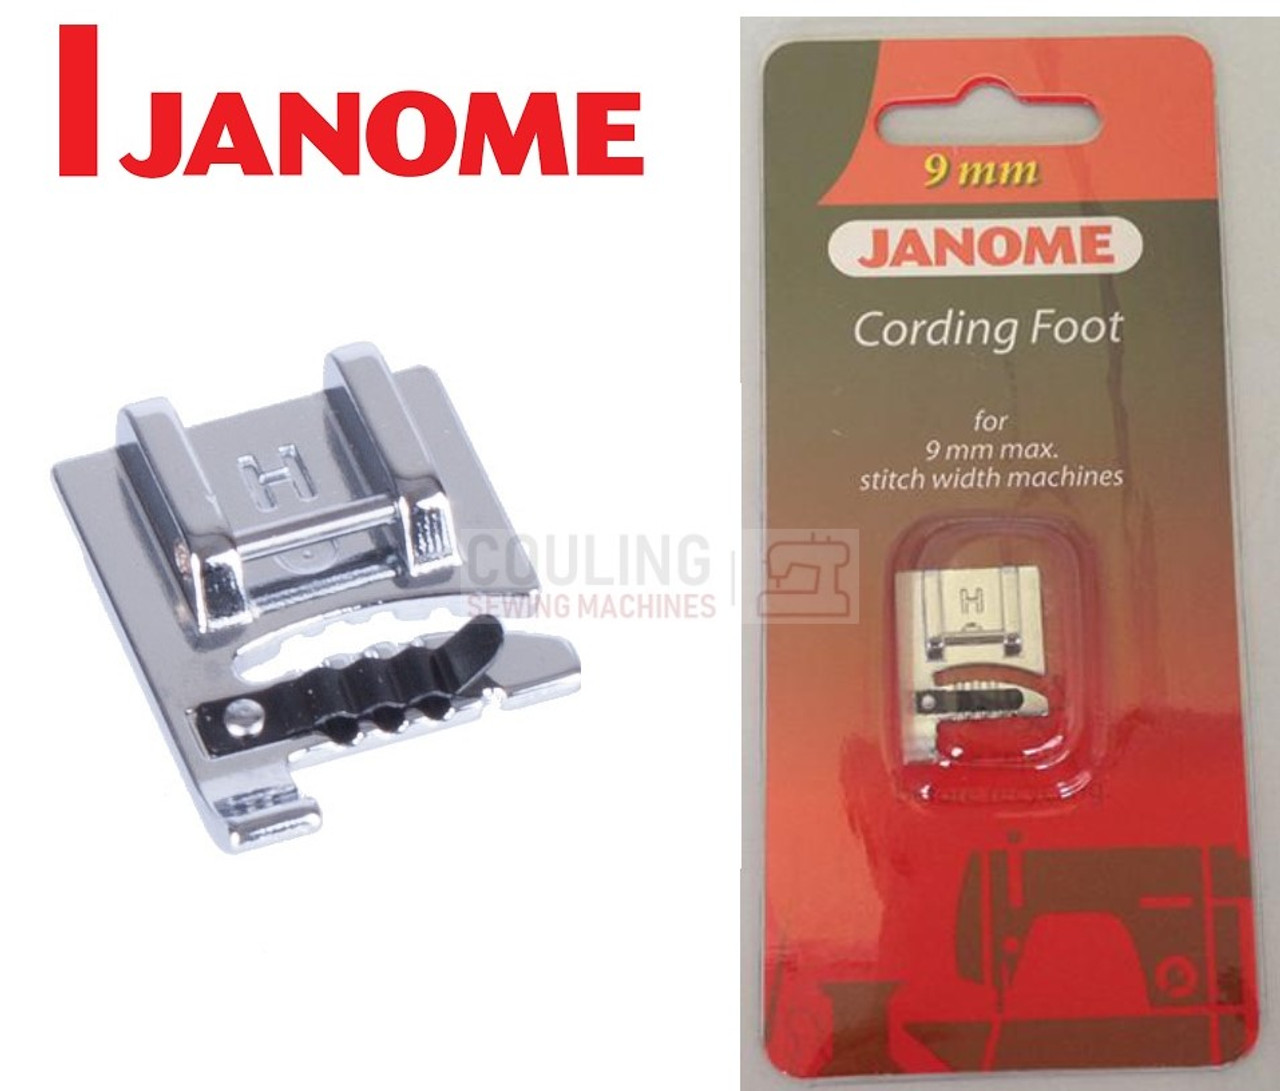 JANOME Compatible Sewing Machine BORDER GUIDE FOOT 9mm Stitch Width Cat D